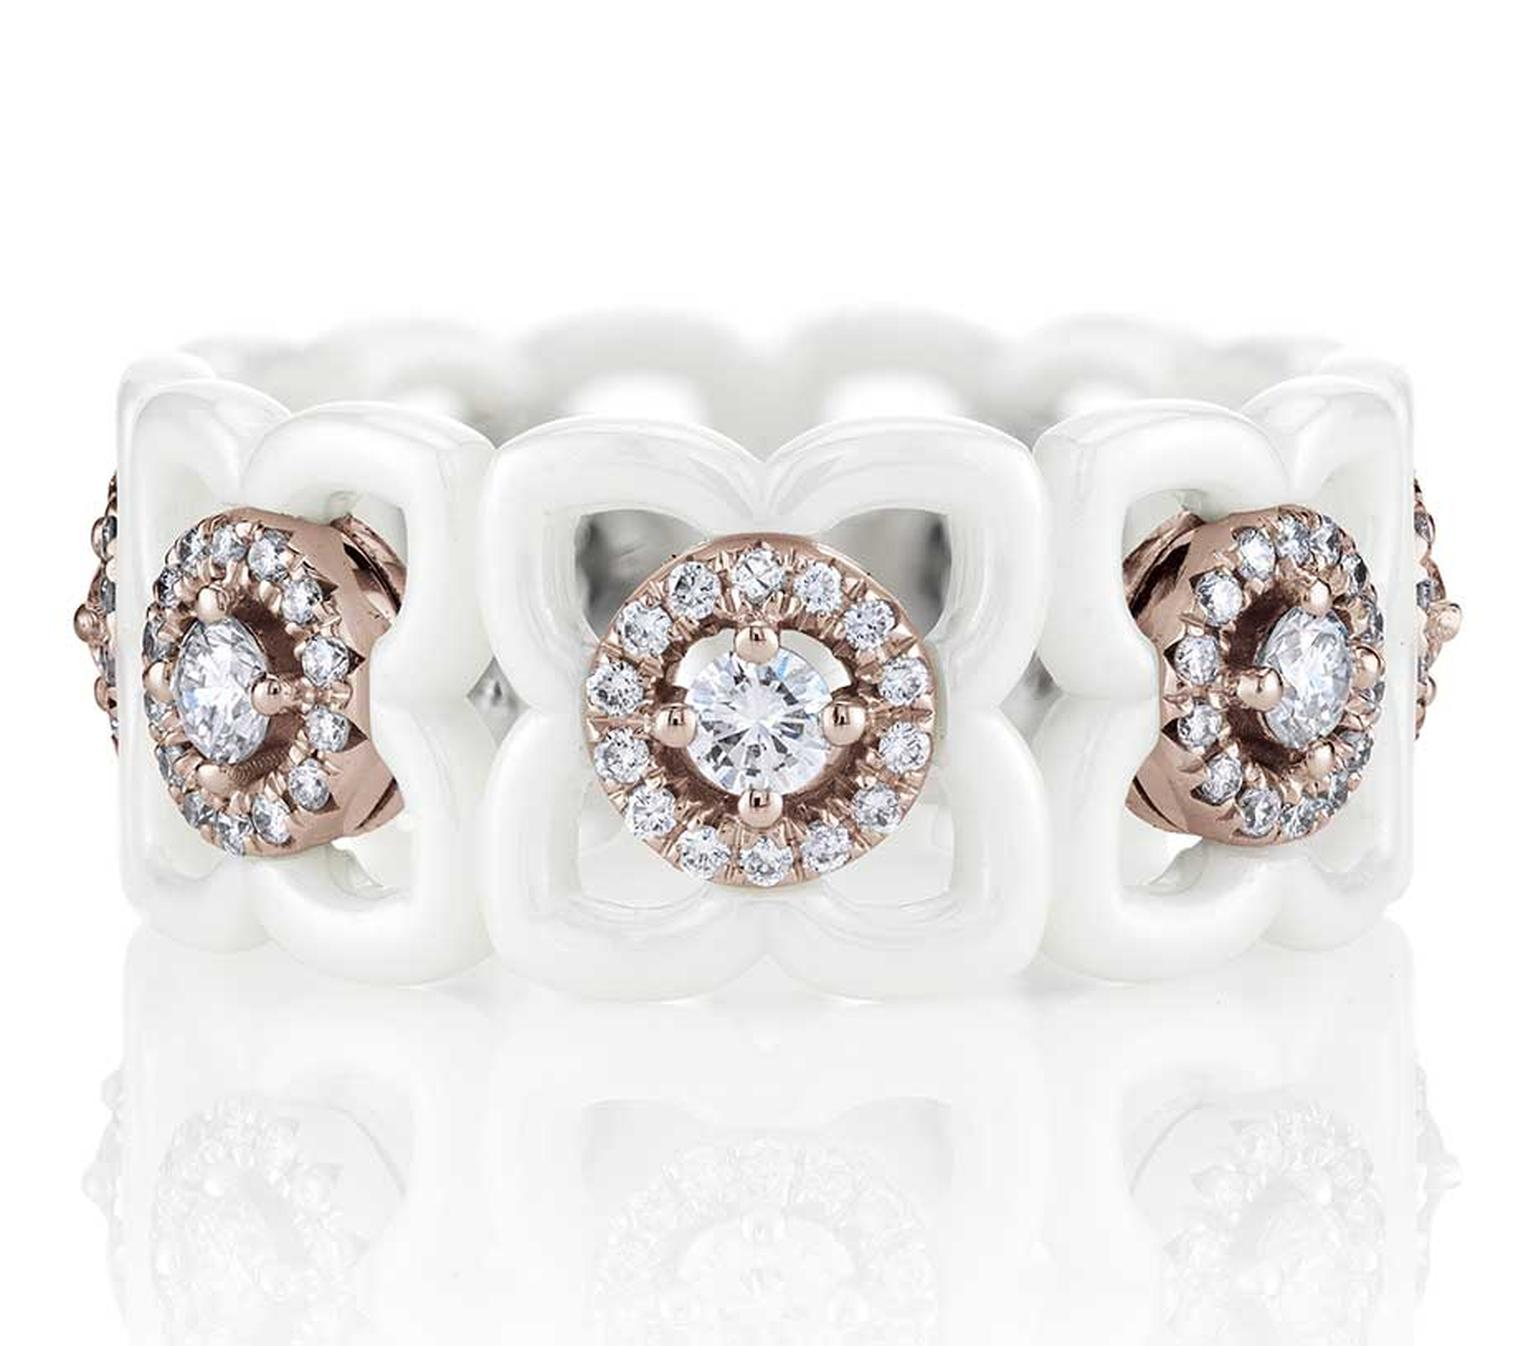 De Beers Daylight Enchanted Lotus ring in white ceramic, pink gold and diamonds (£3,225).